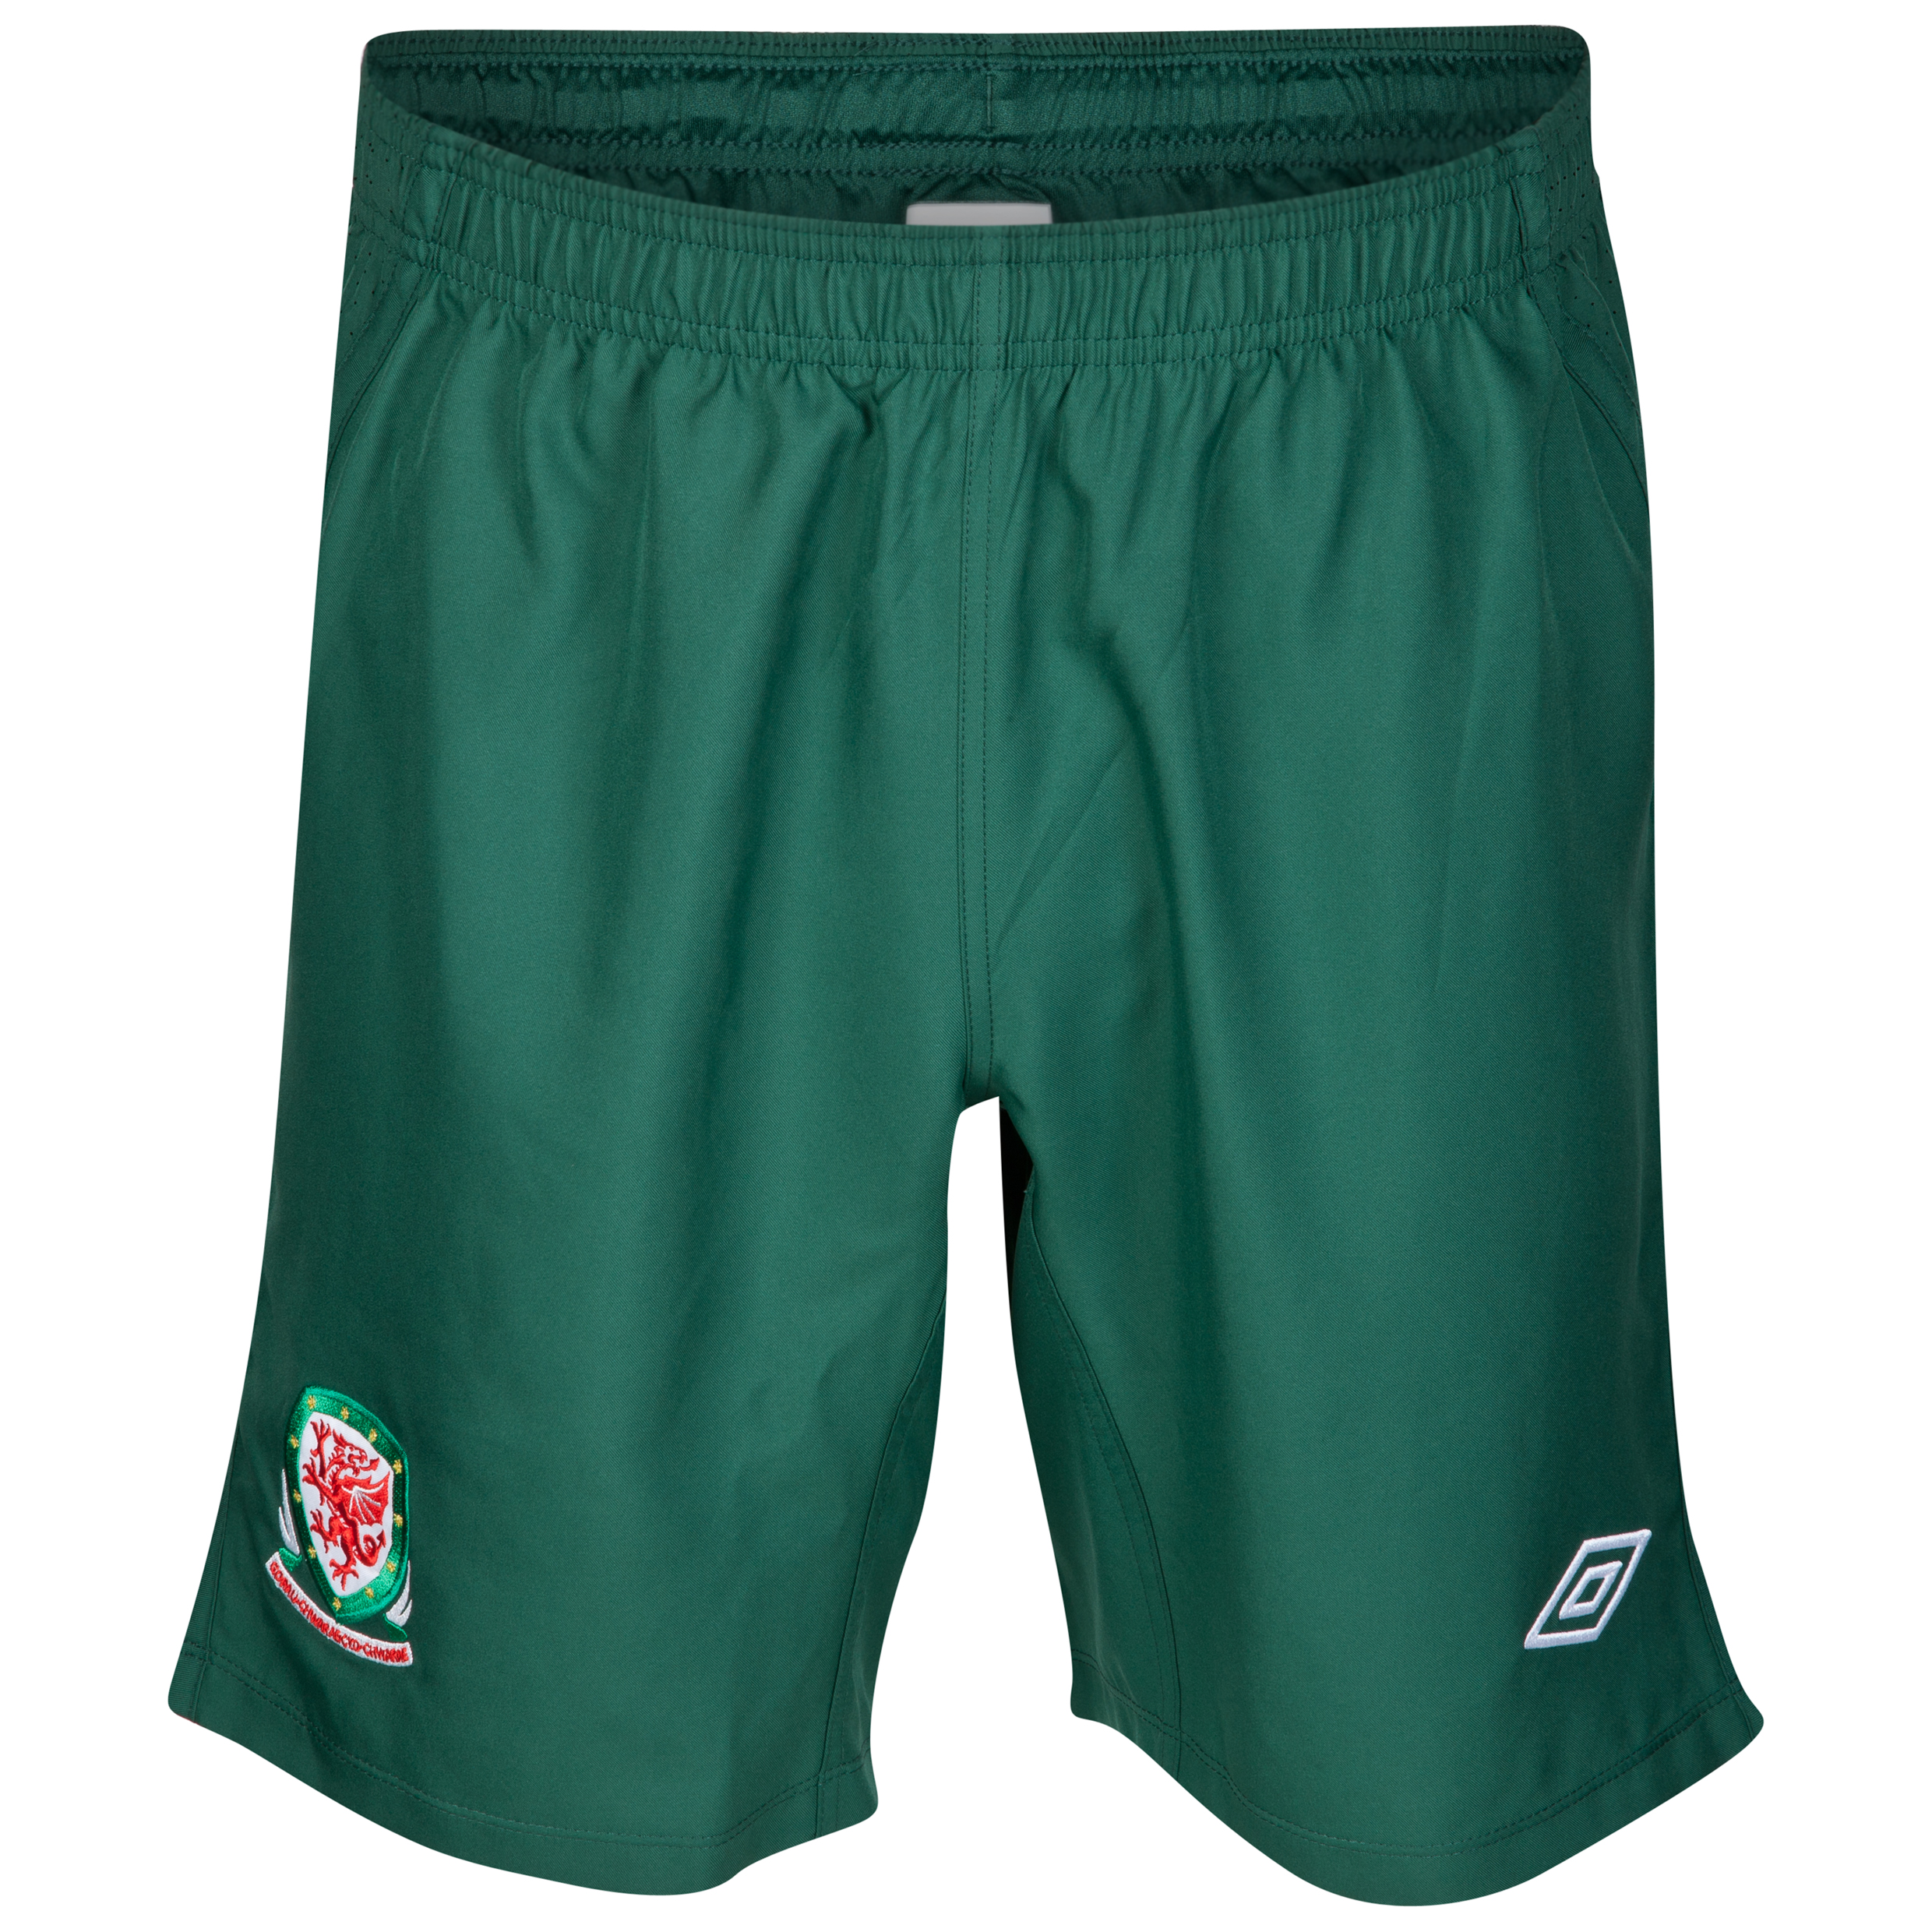 Wales Away Short 2012/13 - Kids